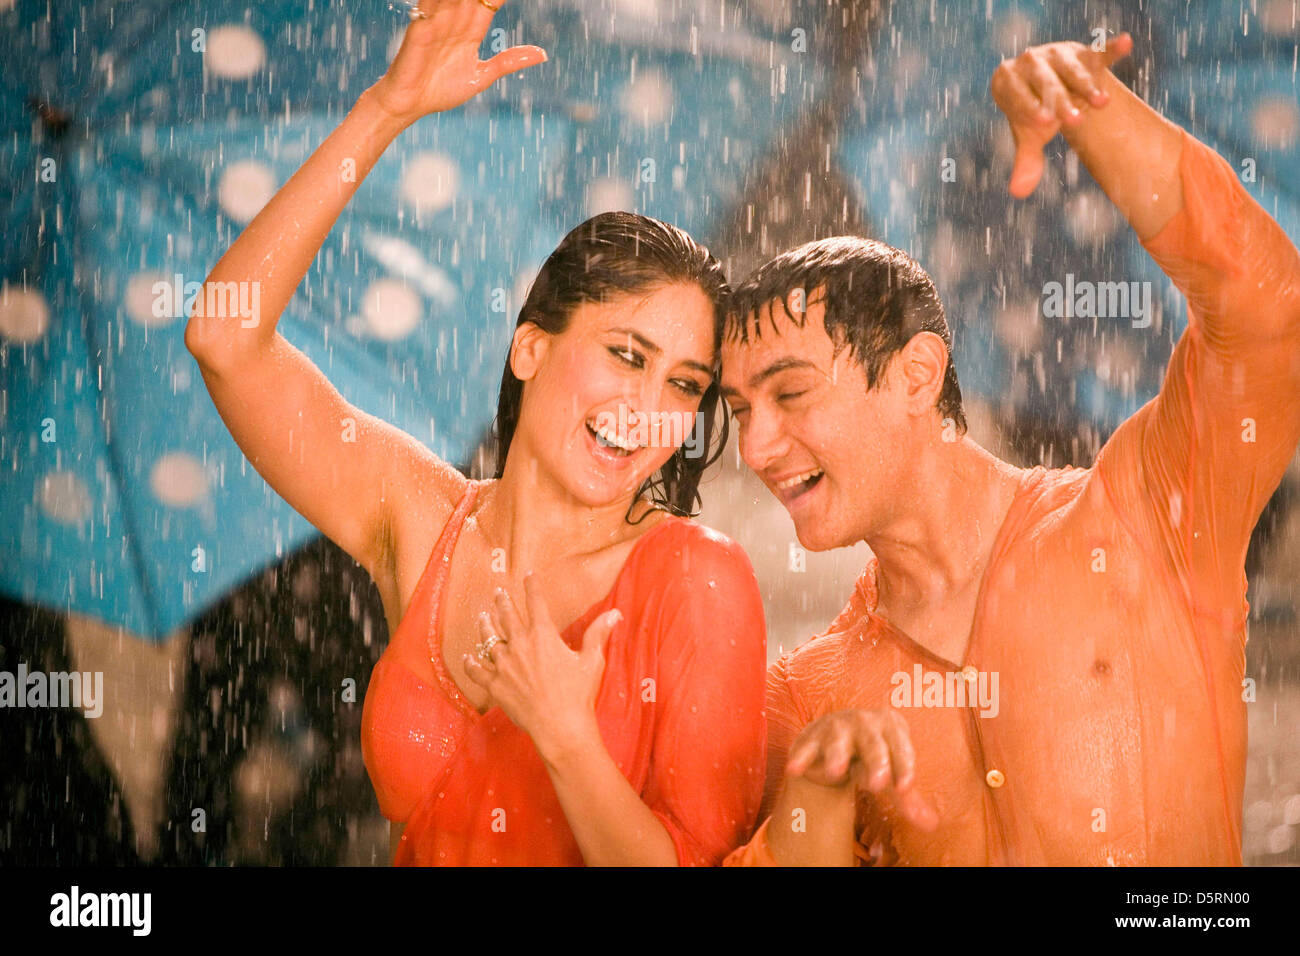 KAREENA KAPOOR & AAMIR KHAN 3 IDIOTS (2009 Stock Photo ...